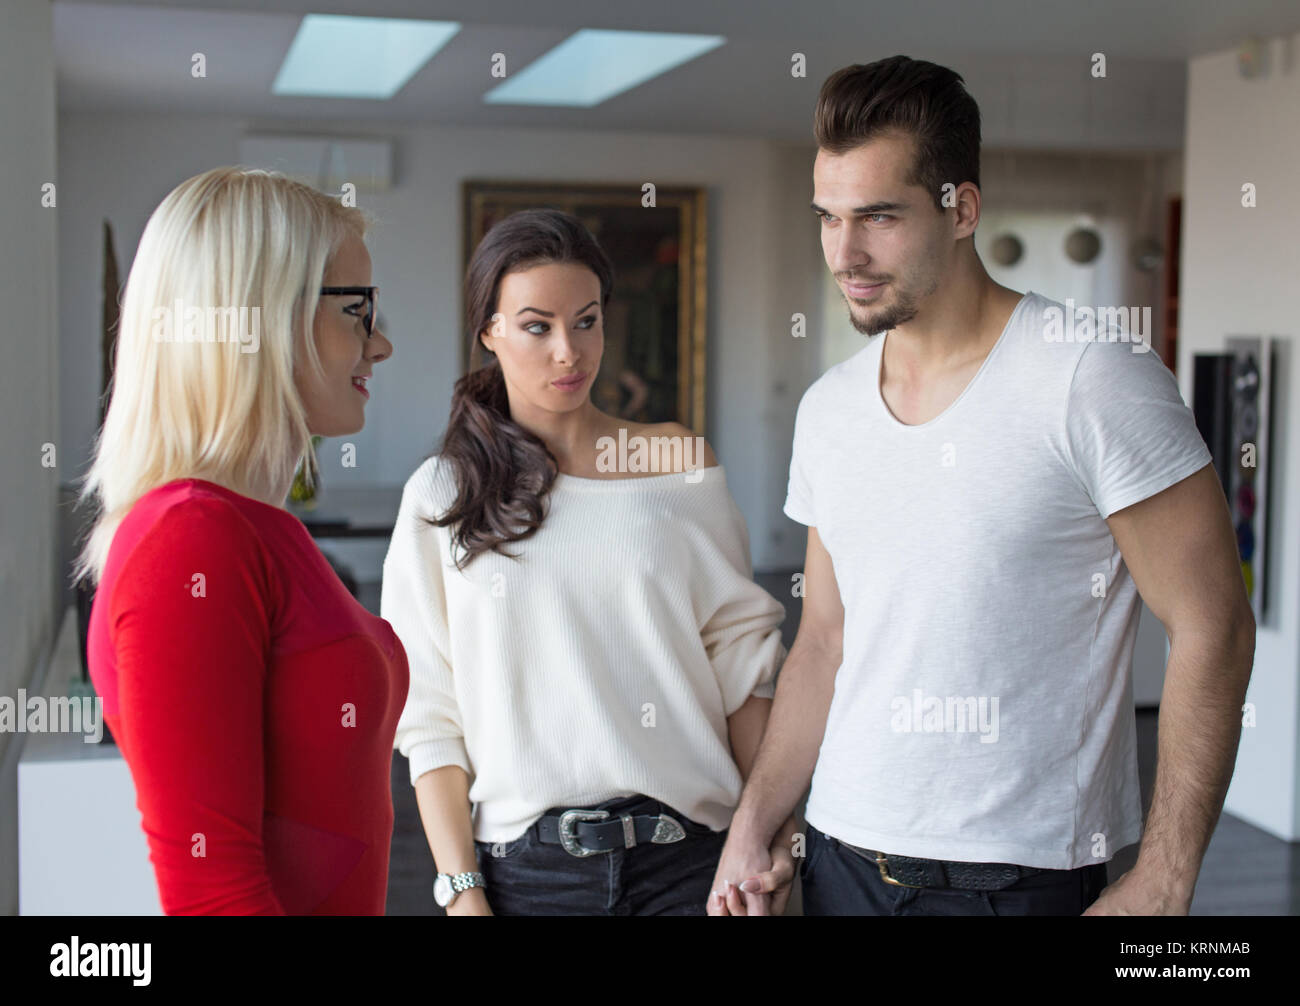 Girlfriend shocked on disloyal boyfriend flirting with woman in red dress, indoors - Stock Image